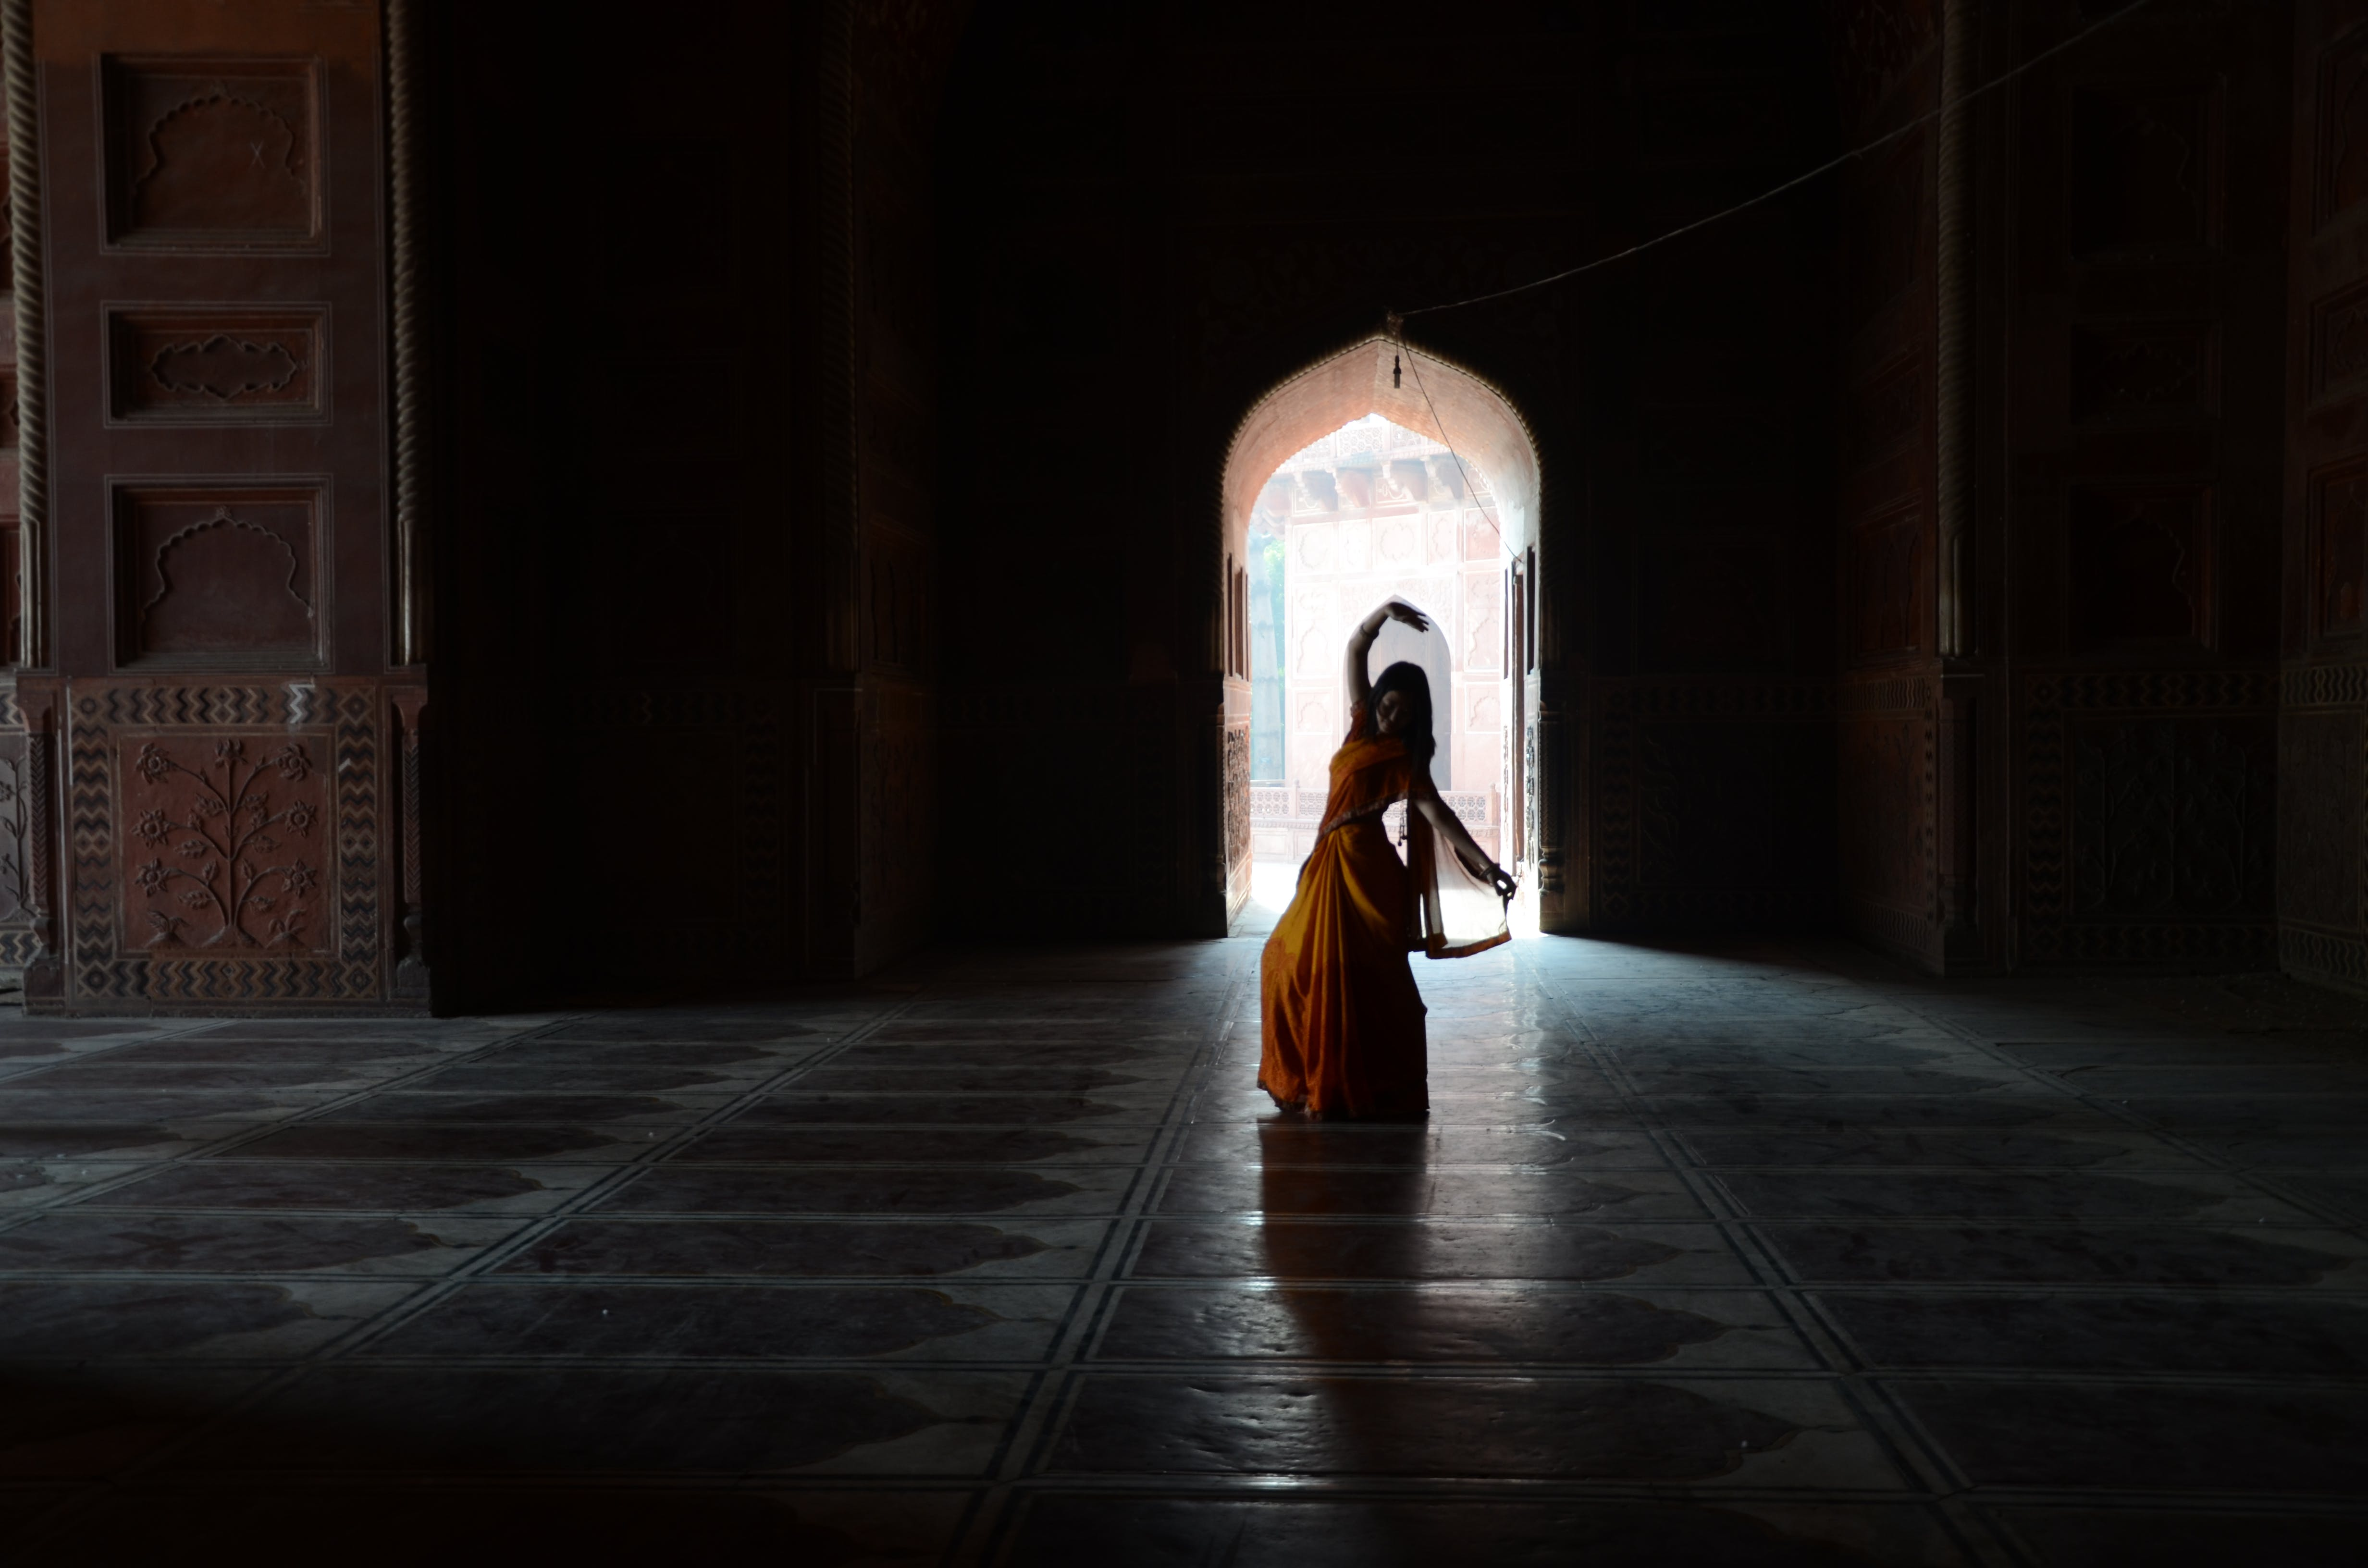 Woman in Orange and Yellow Traditional Dress Silhouette Inside Building